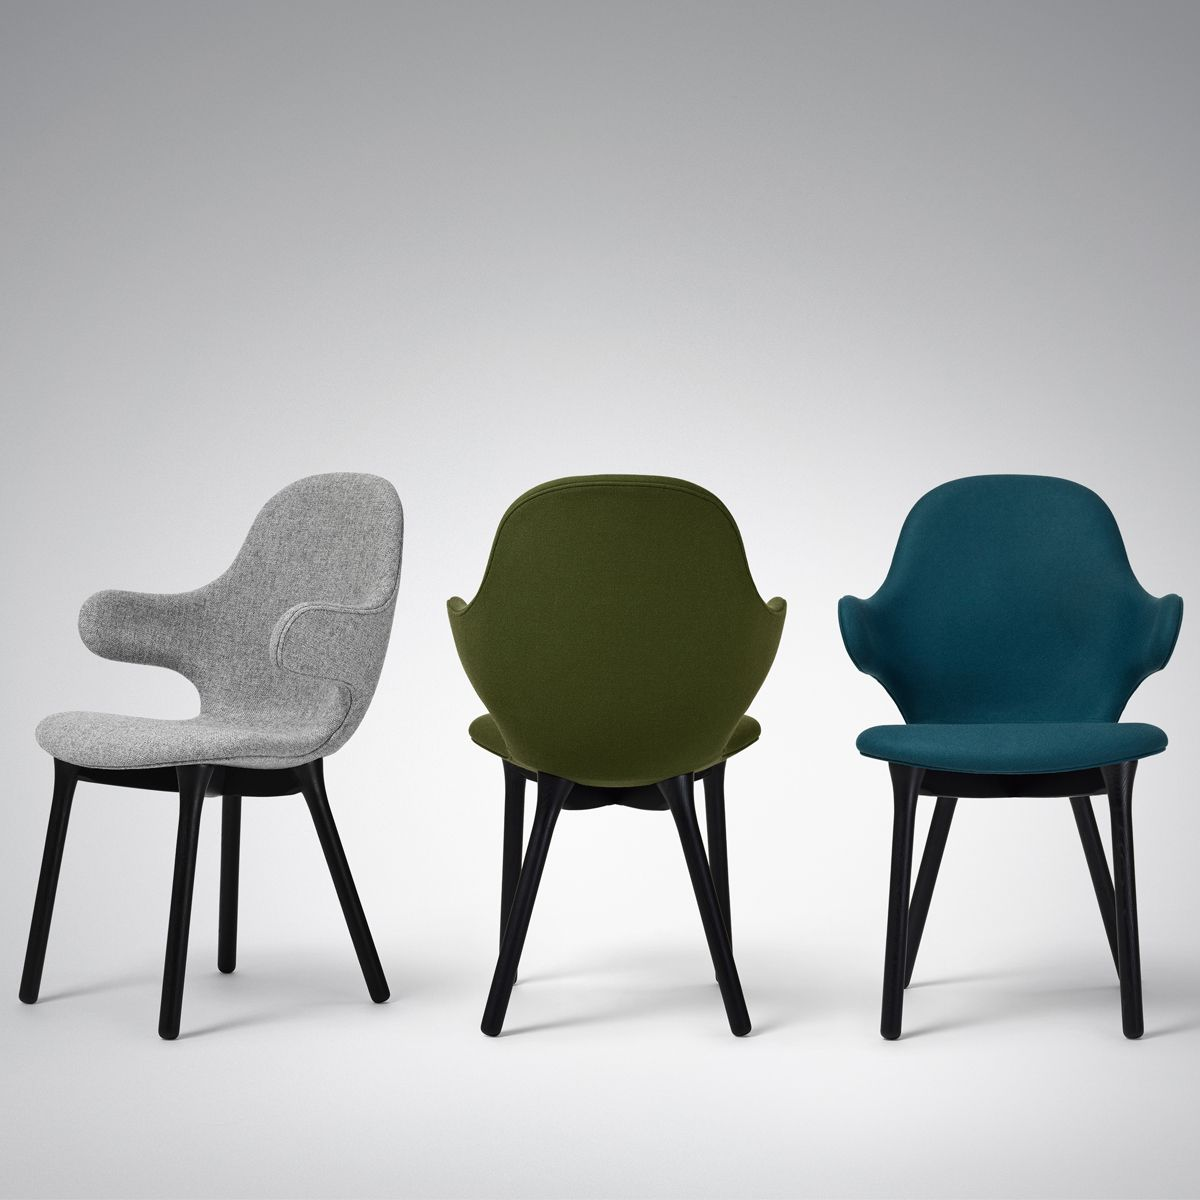 www.greatdanecontract.com site DefaultSite filesystem images HighRess DiningChairs Catch-Chair-Three.jpg